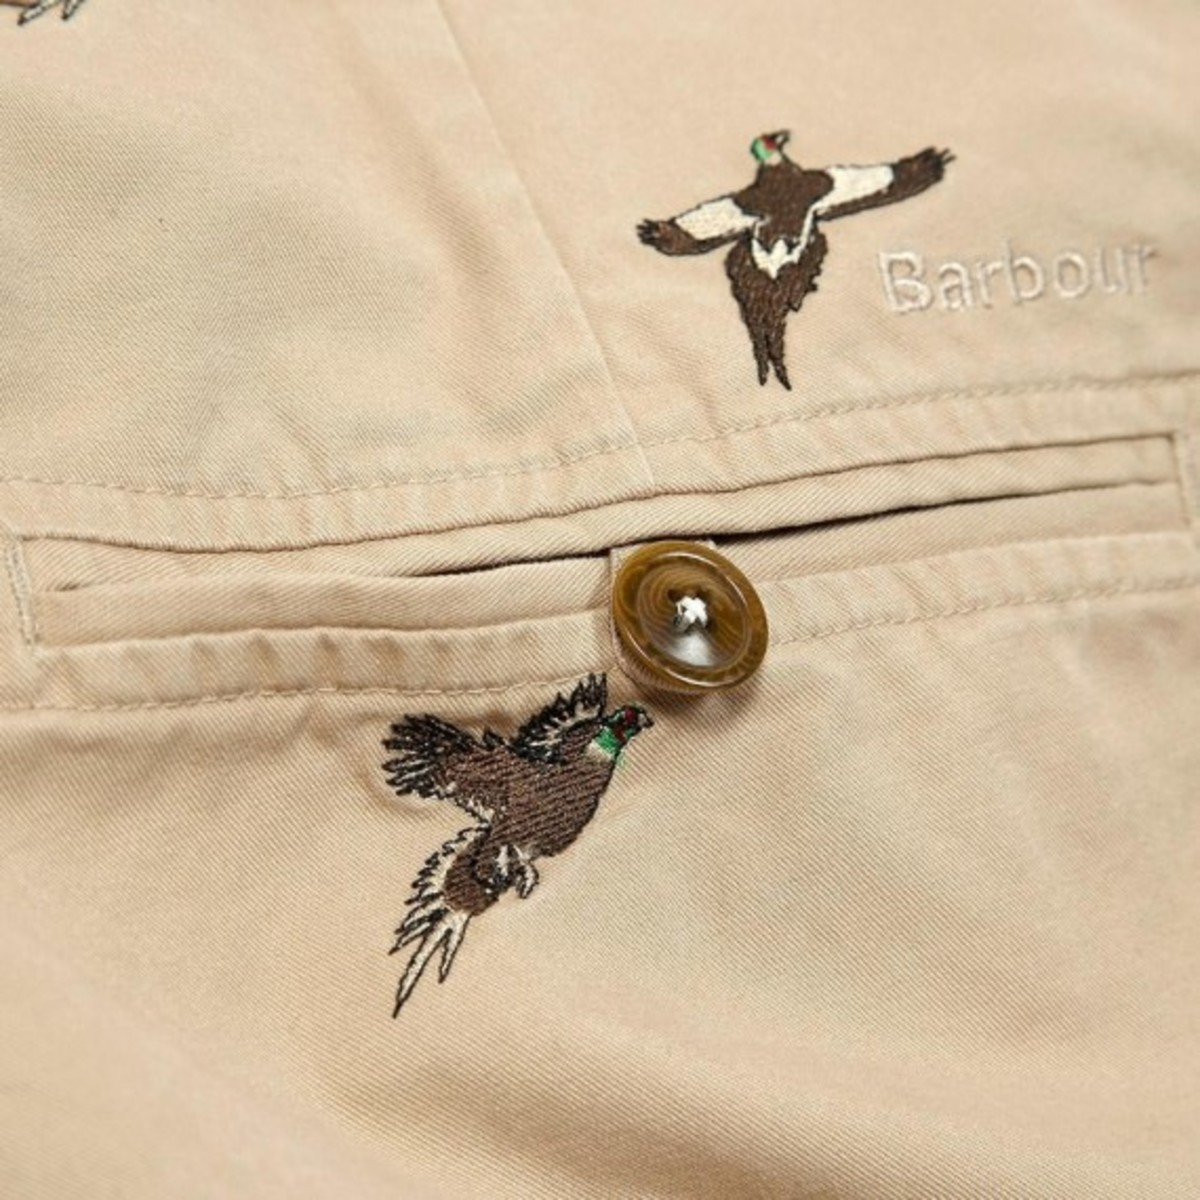 barbour-pheasant-collection-21